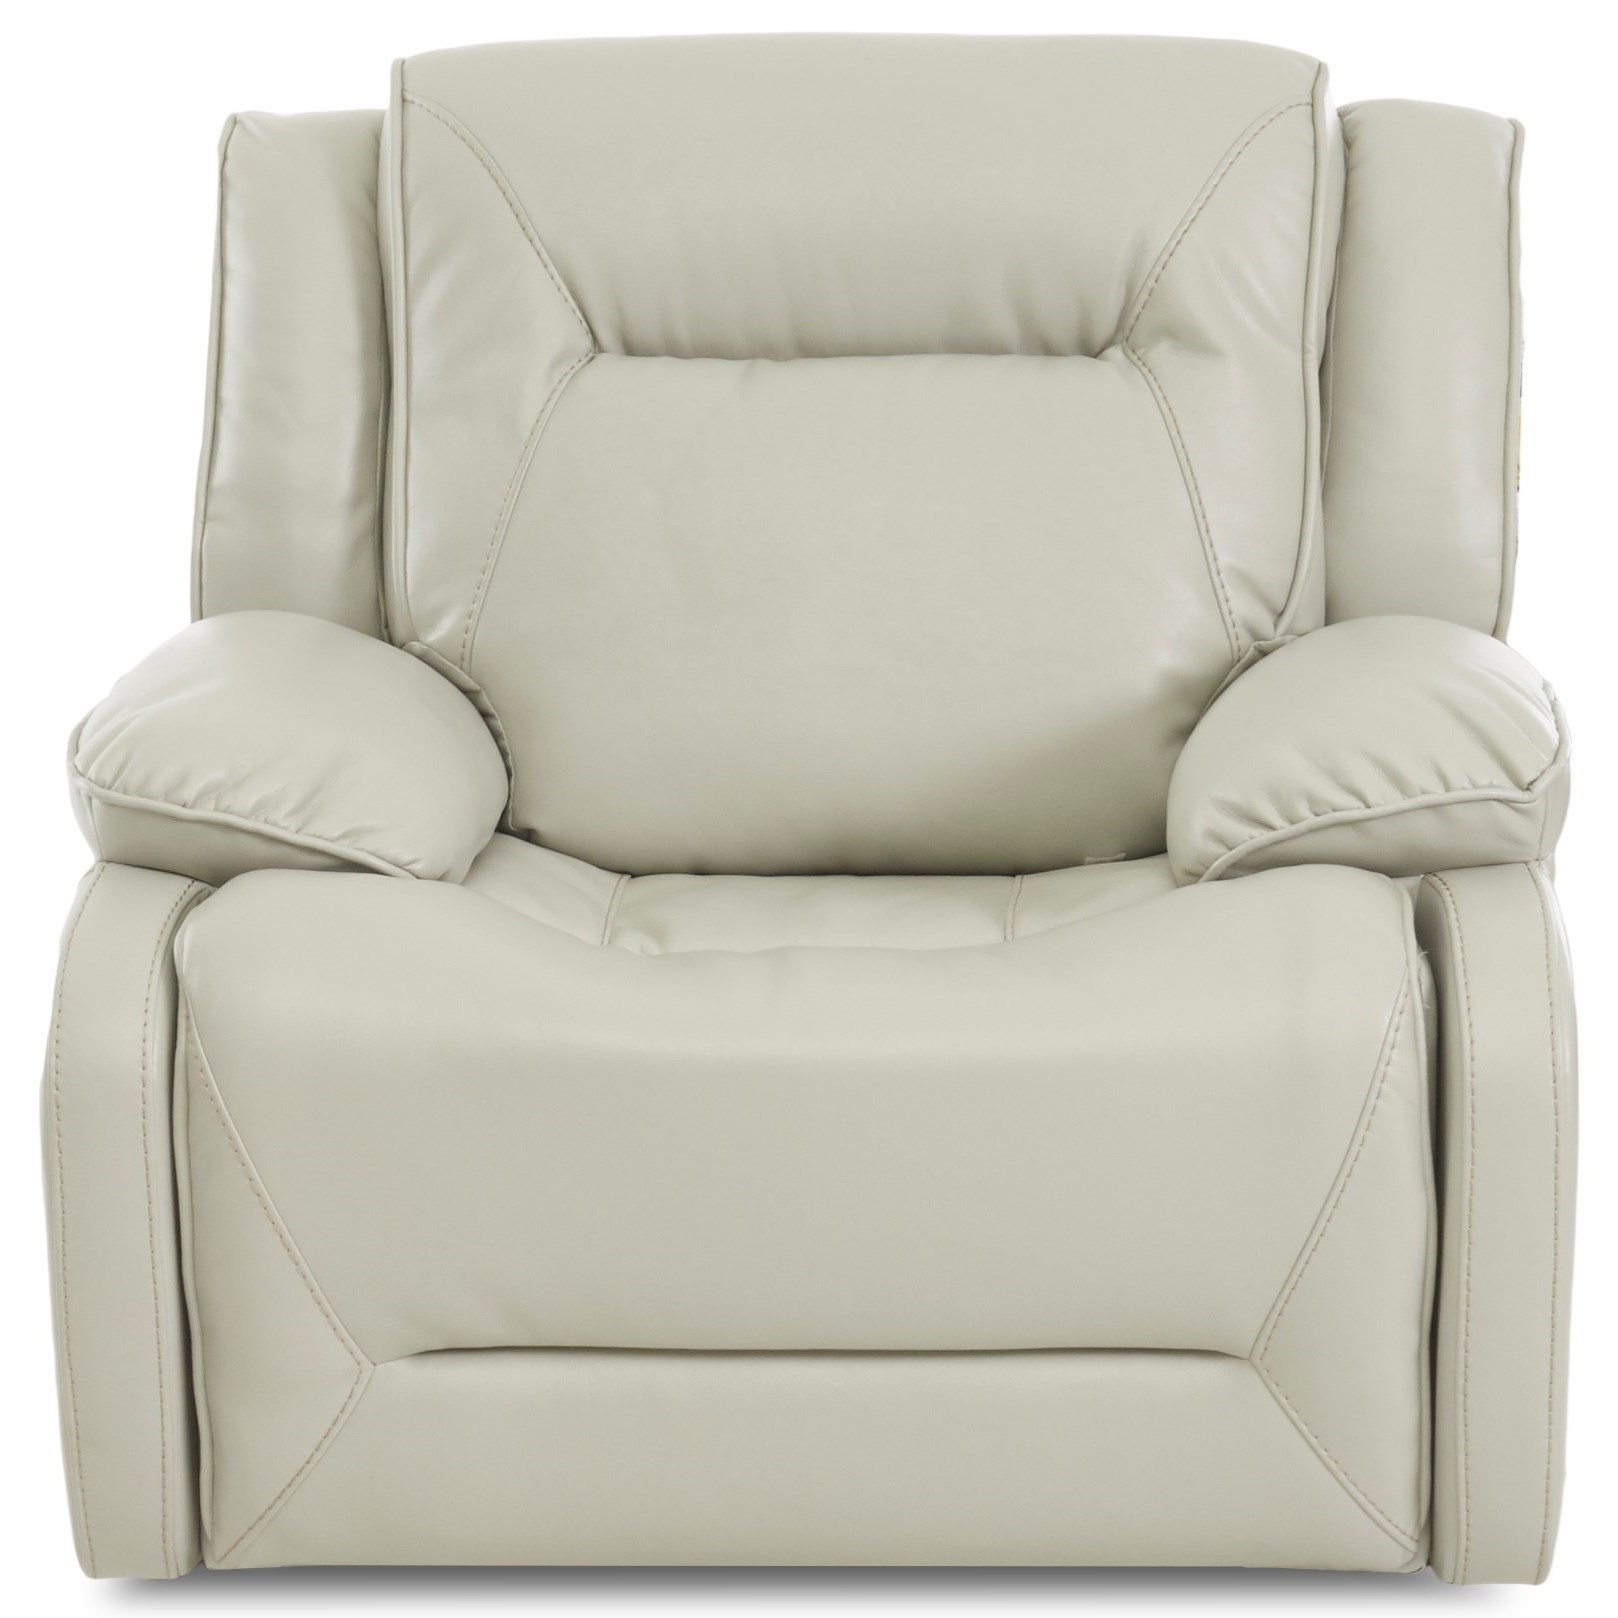 Dansby Power Reclining Chair by Klaussner International at Northeast Factory Direct